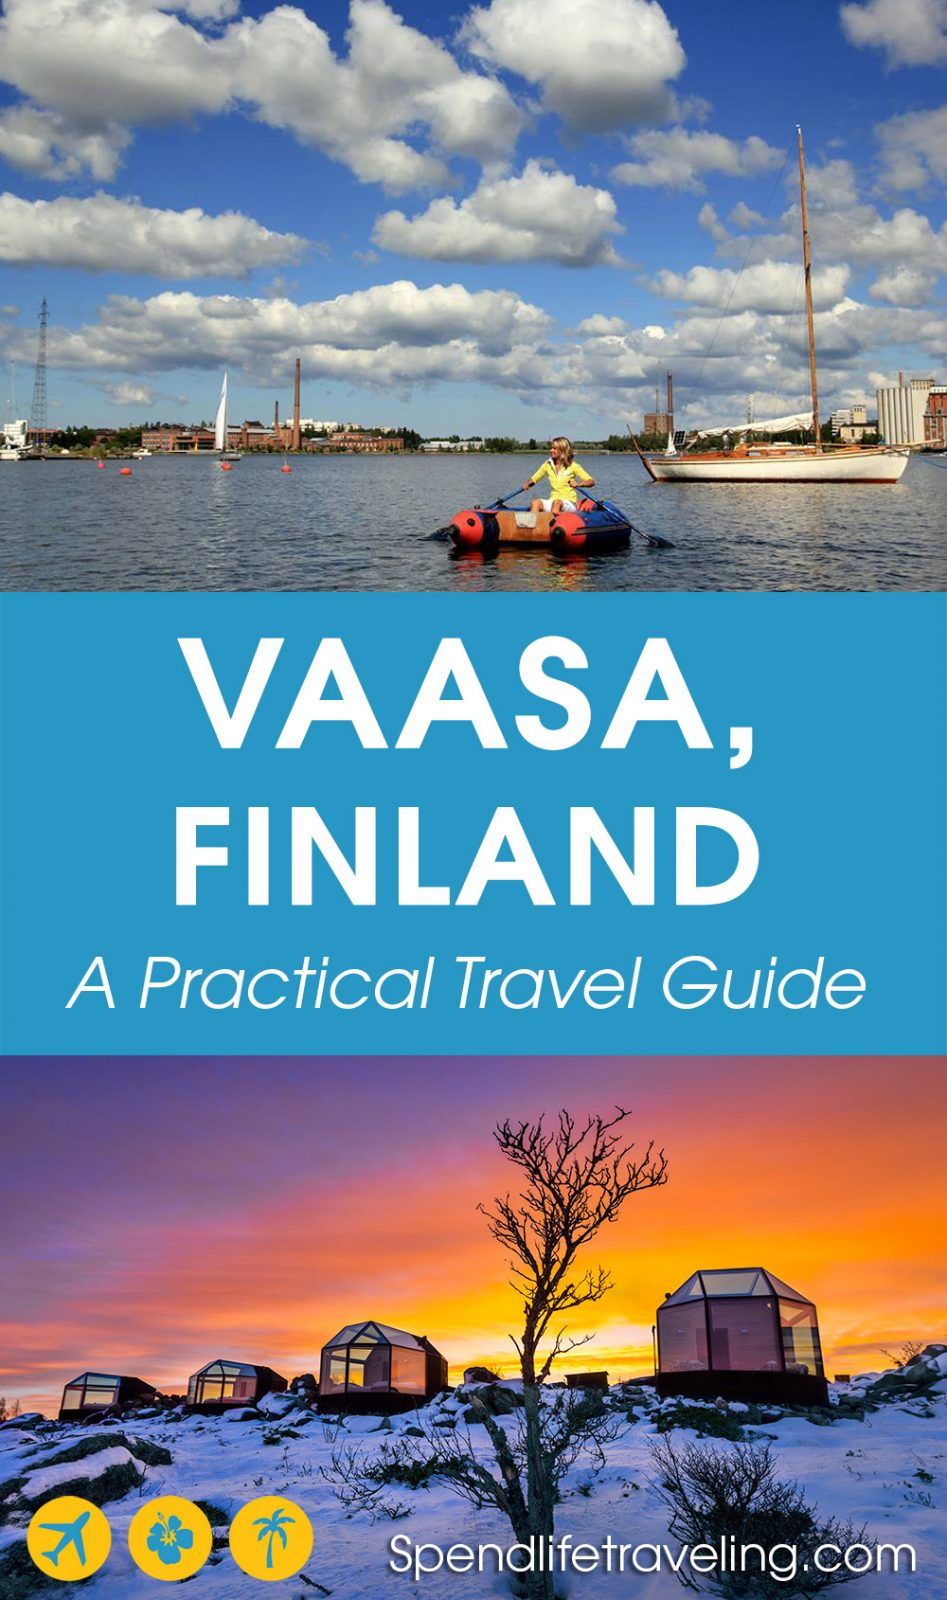 a practical travel guide for visiting Vaasa, Finland